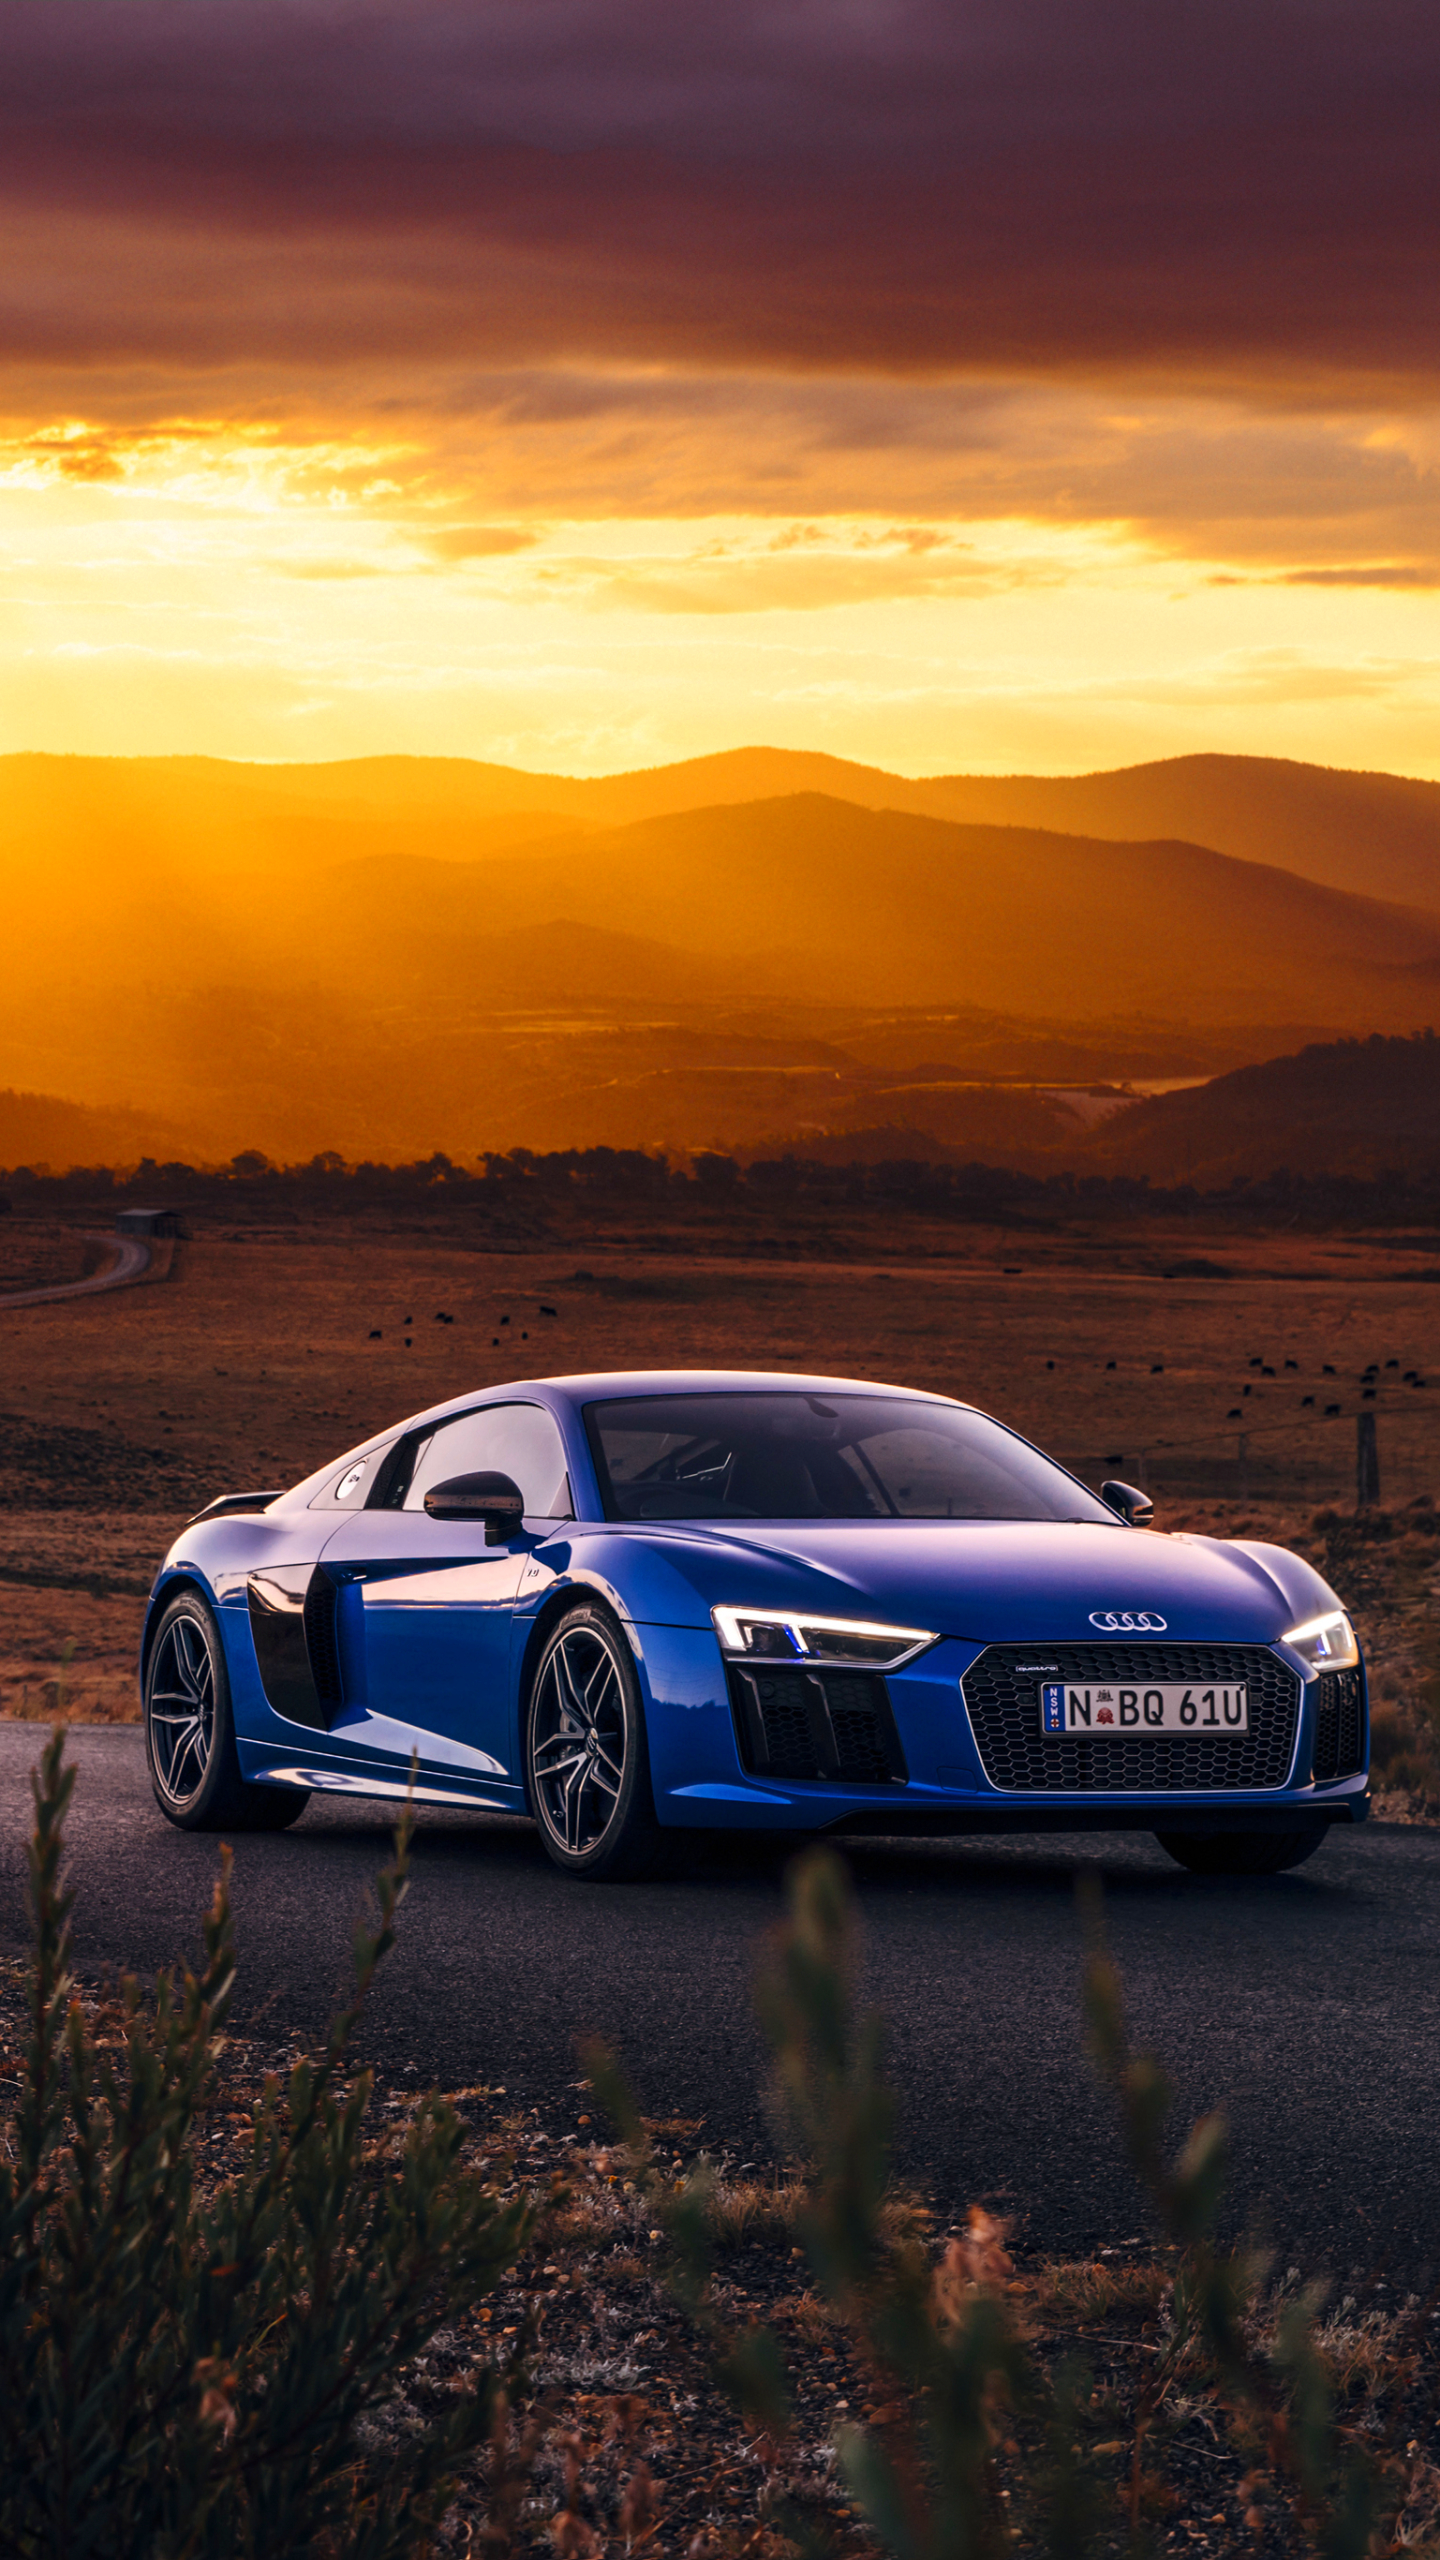 iPhone 6 VehiclesAudi R8 Wallpaper ID 640154